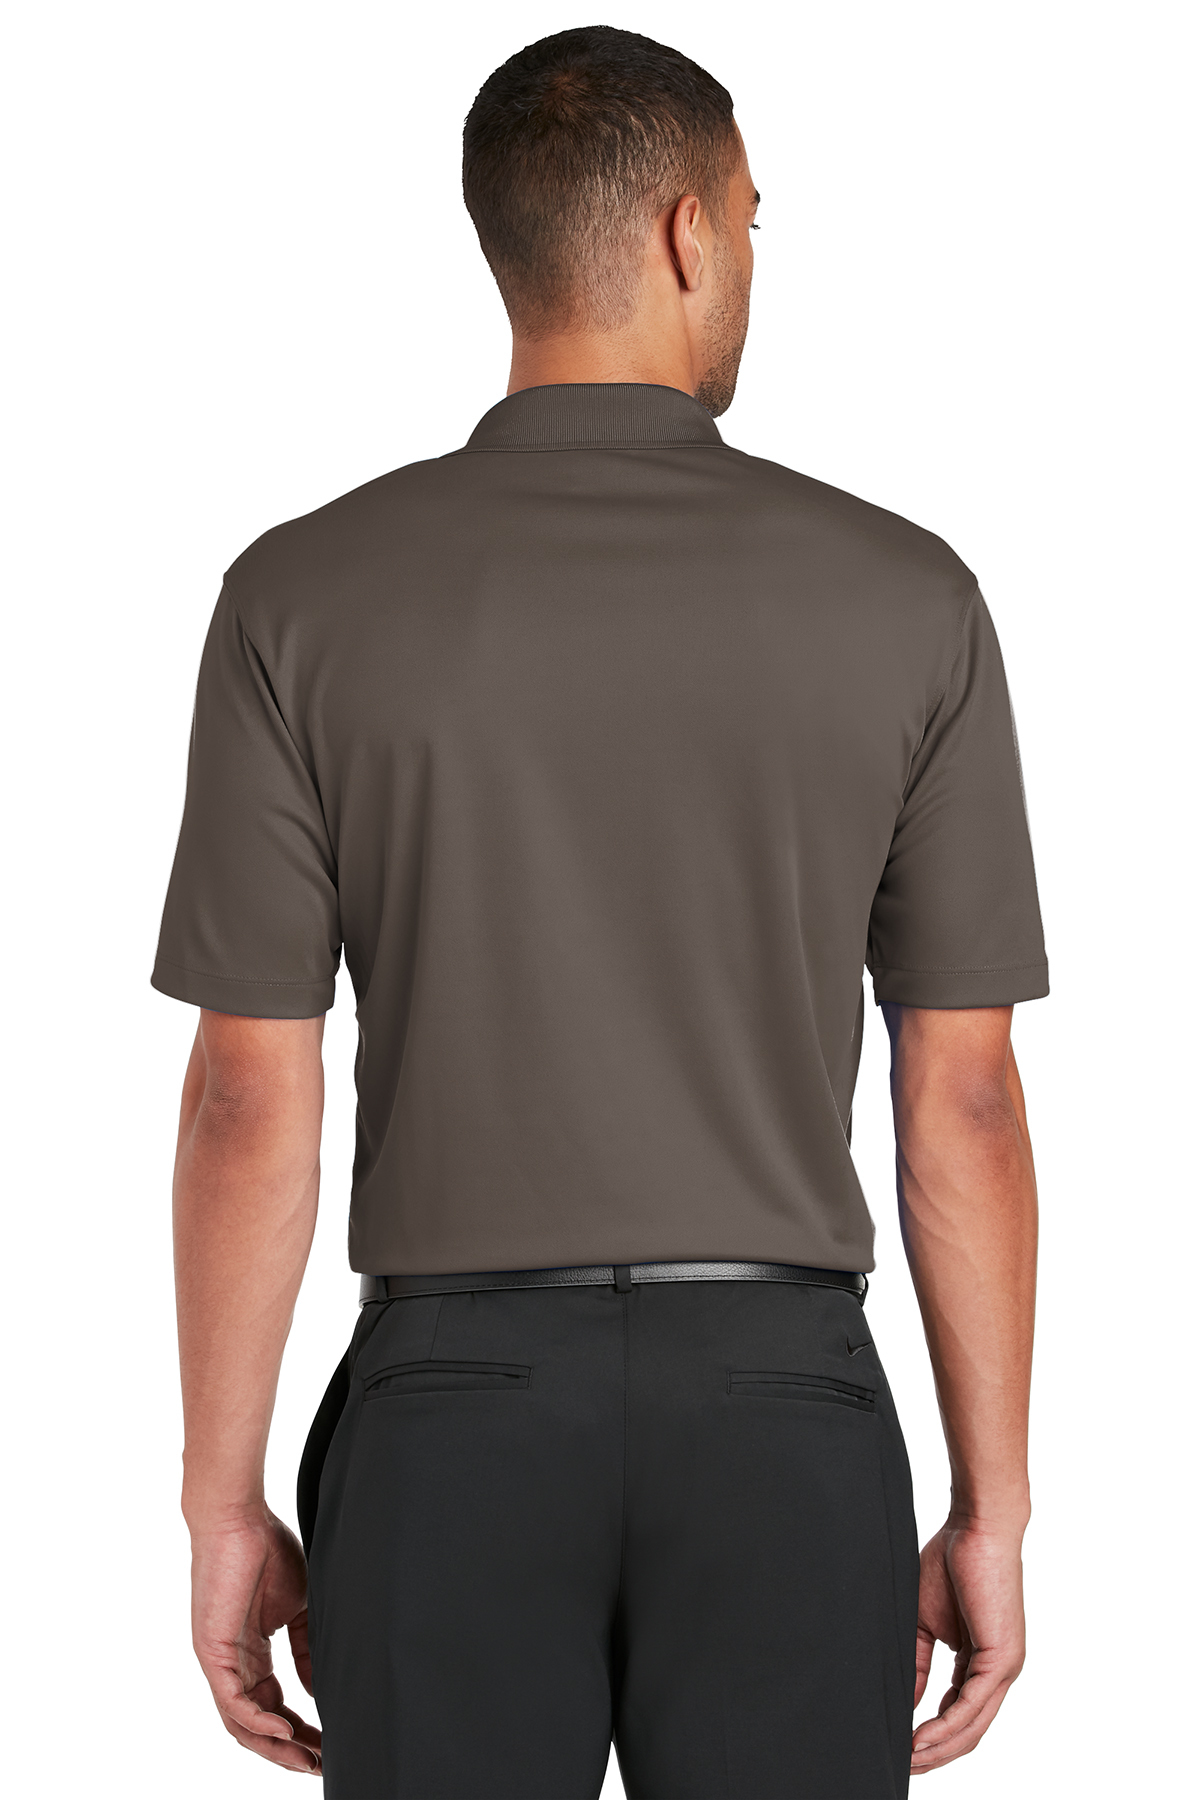 a80308a2 ... Nike Dri-FIT Micro Pique Polo. A maximum of 8 logos have been uploaded.  Please remove a logo from My Logos to continue